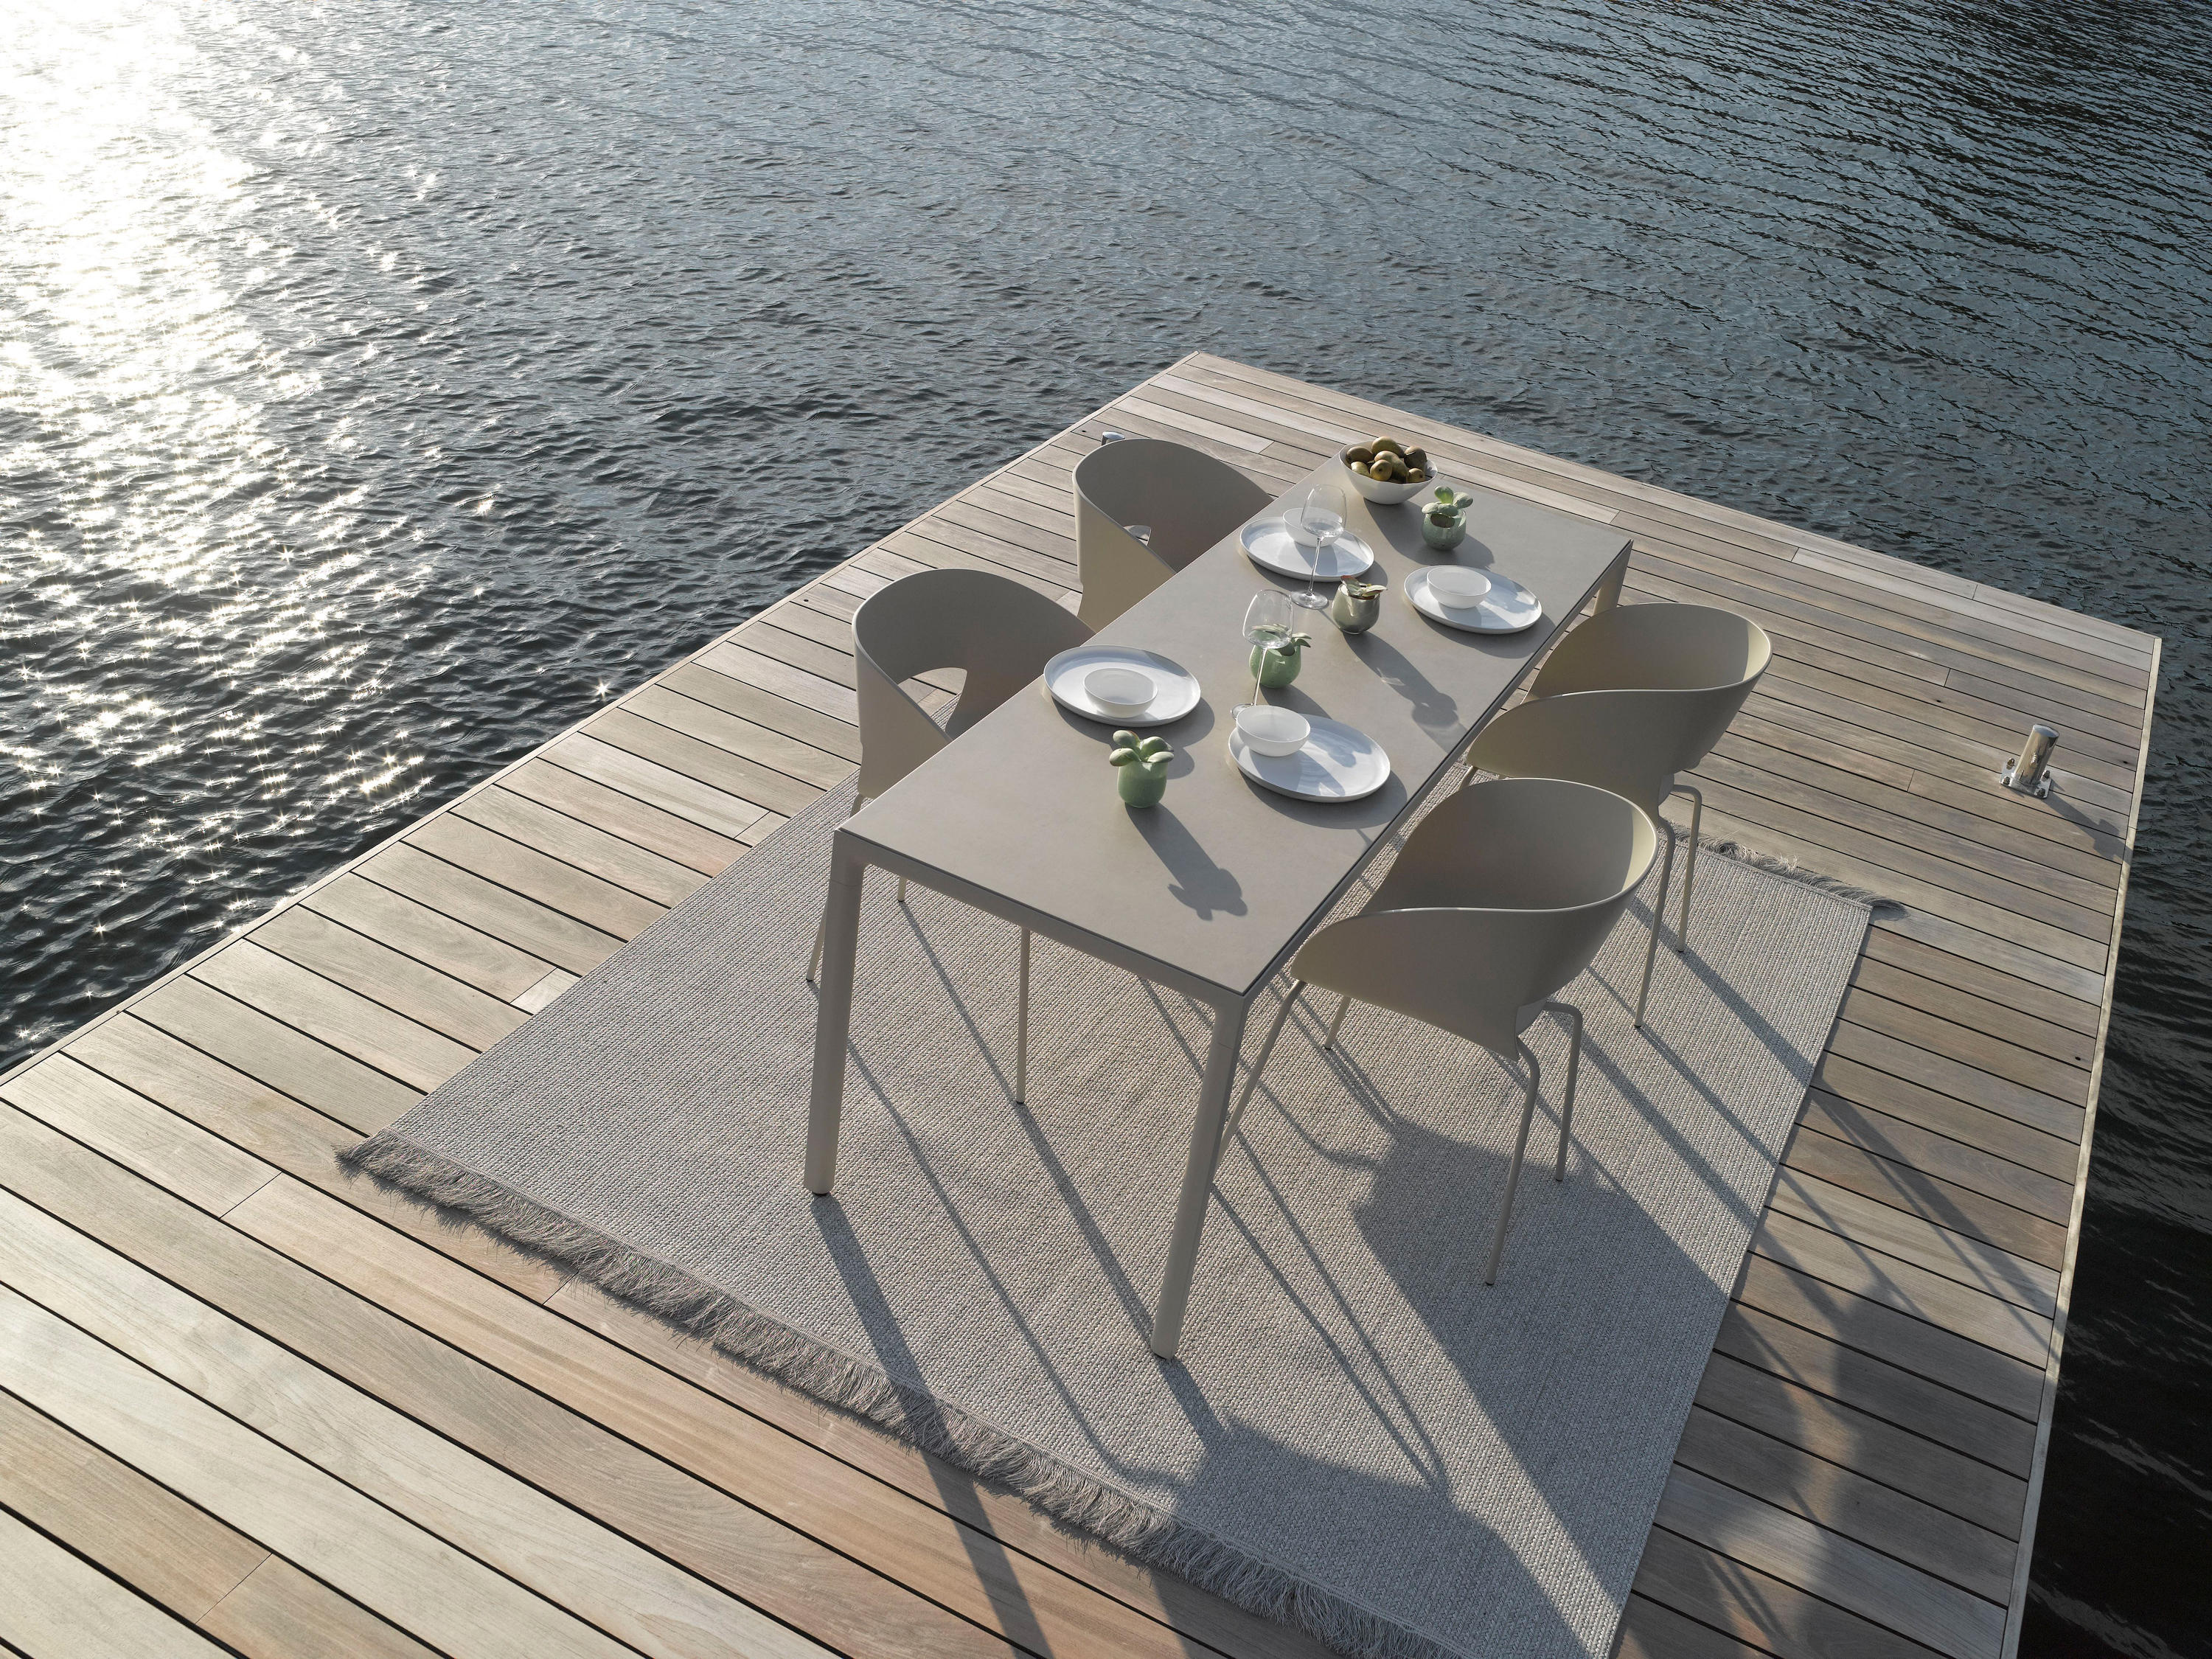 OUTDOOR CARPETS   Outdoor rugs from Trib       Architonic Outdoor Carpets by Trib